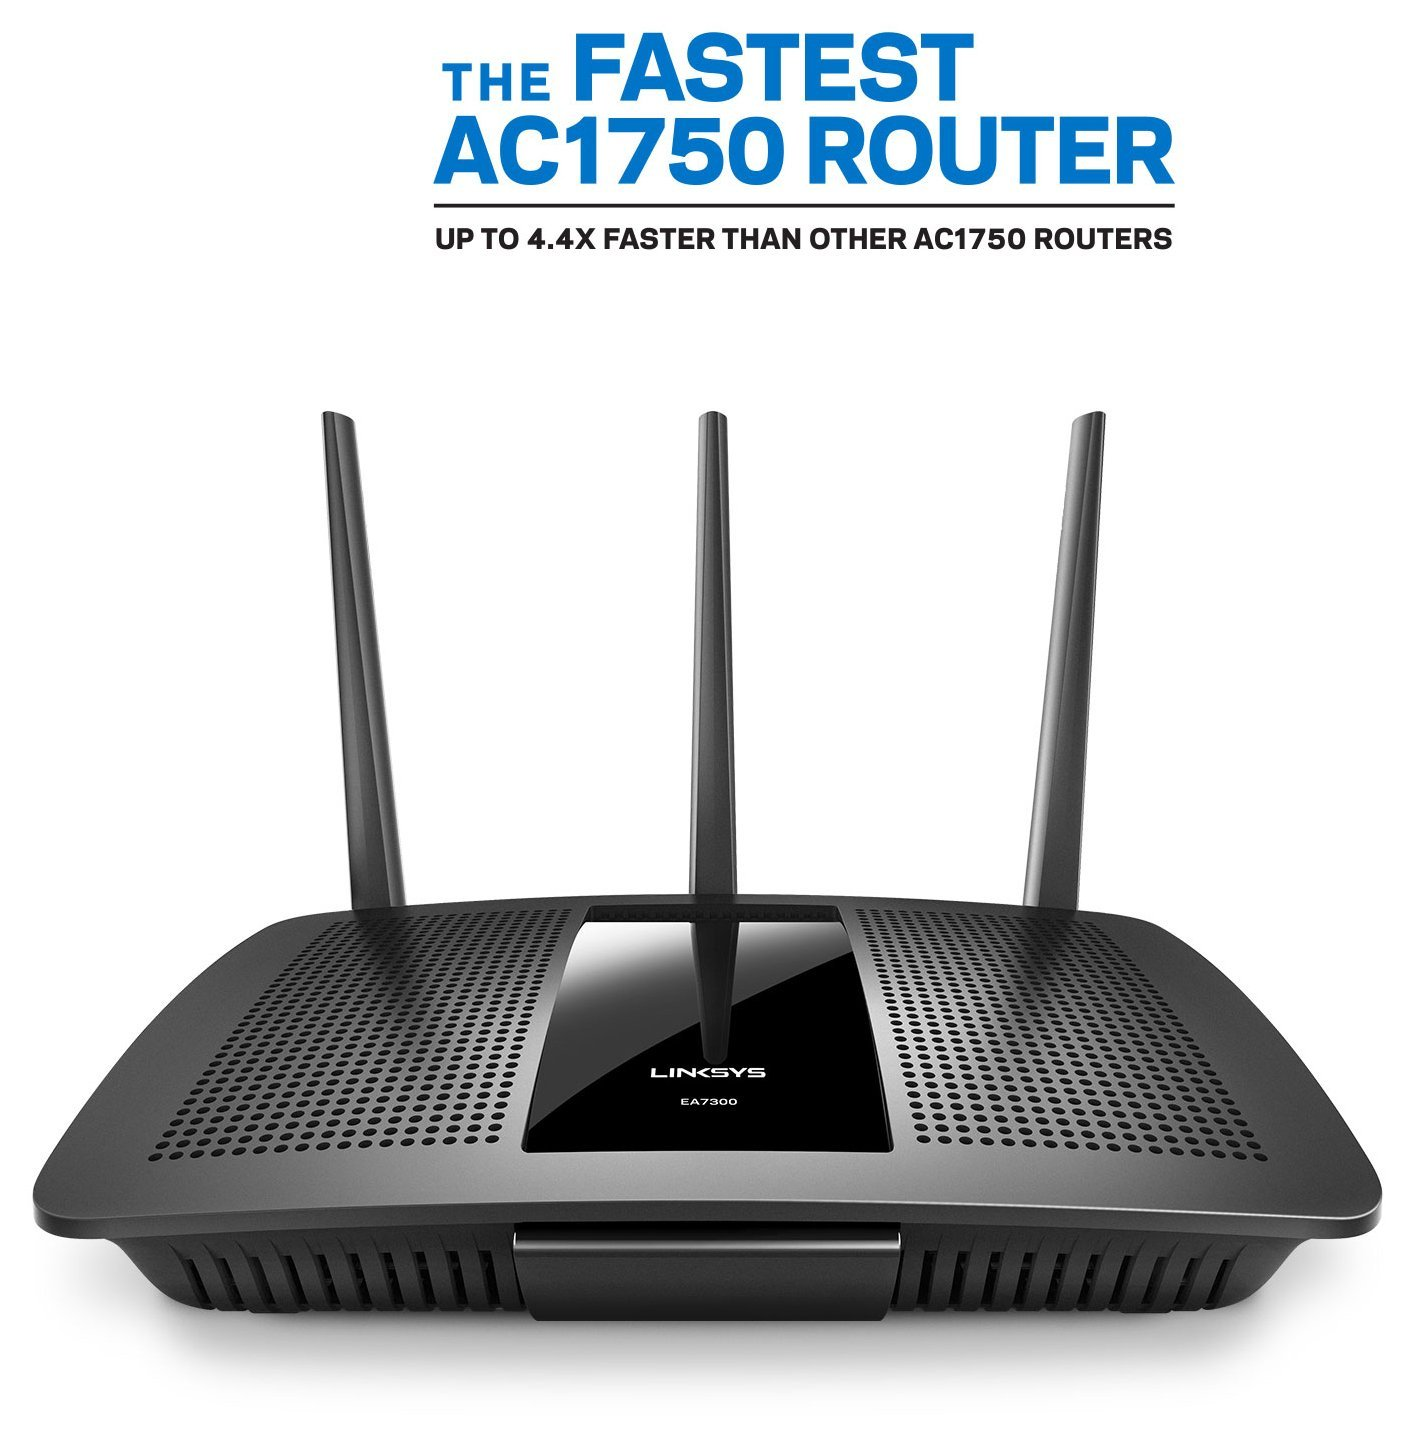 Linksys EA7300 router